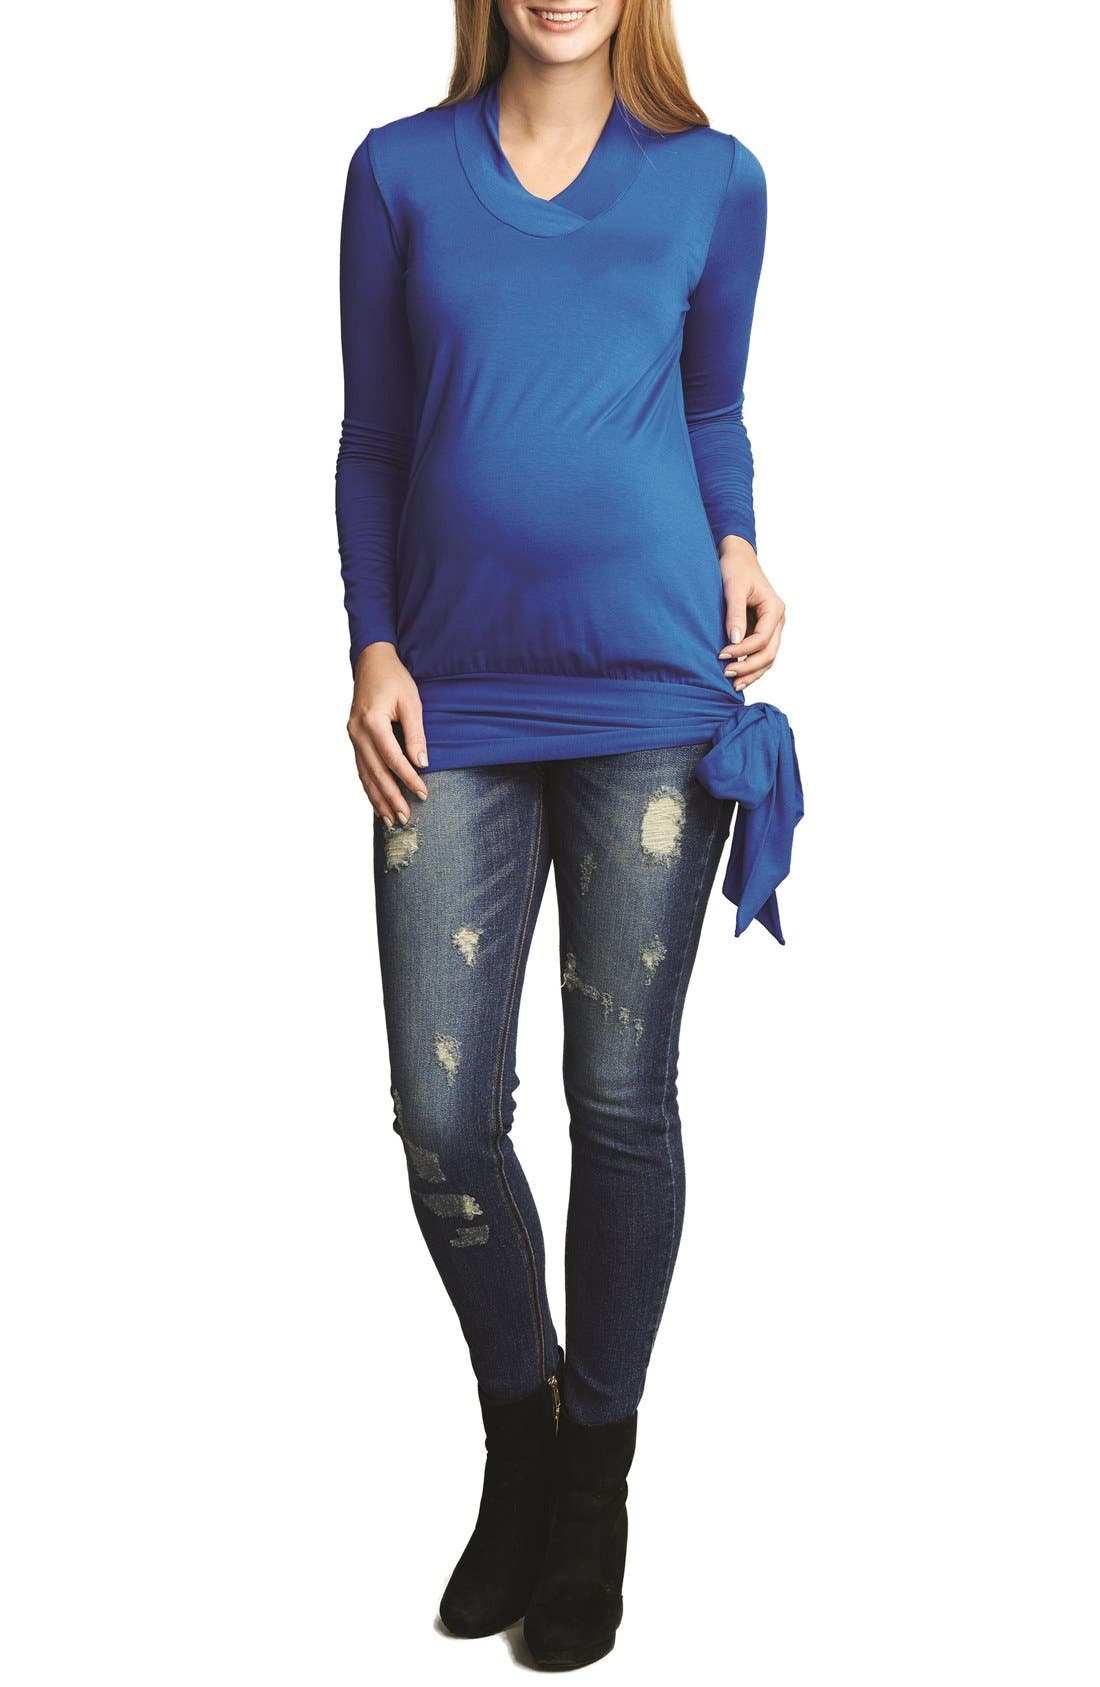 The Urban Ma Side Tie Maternity Top